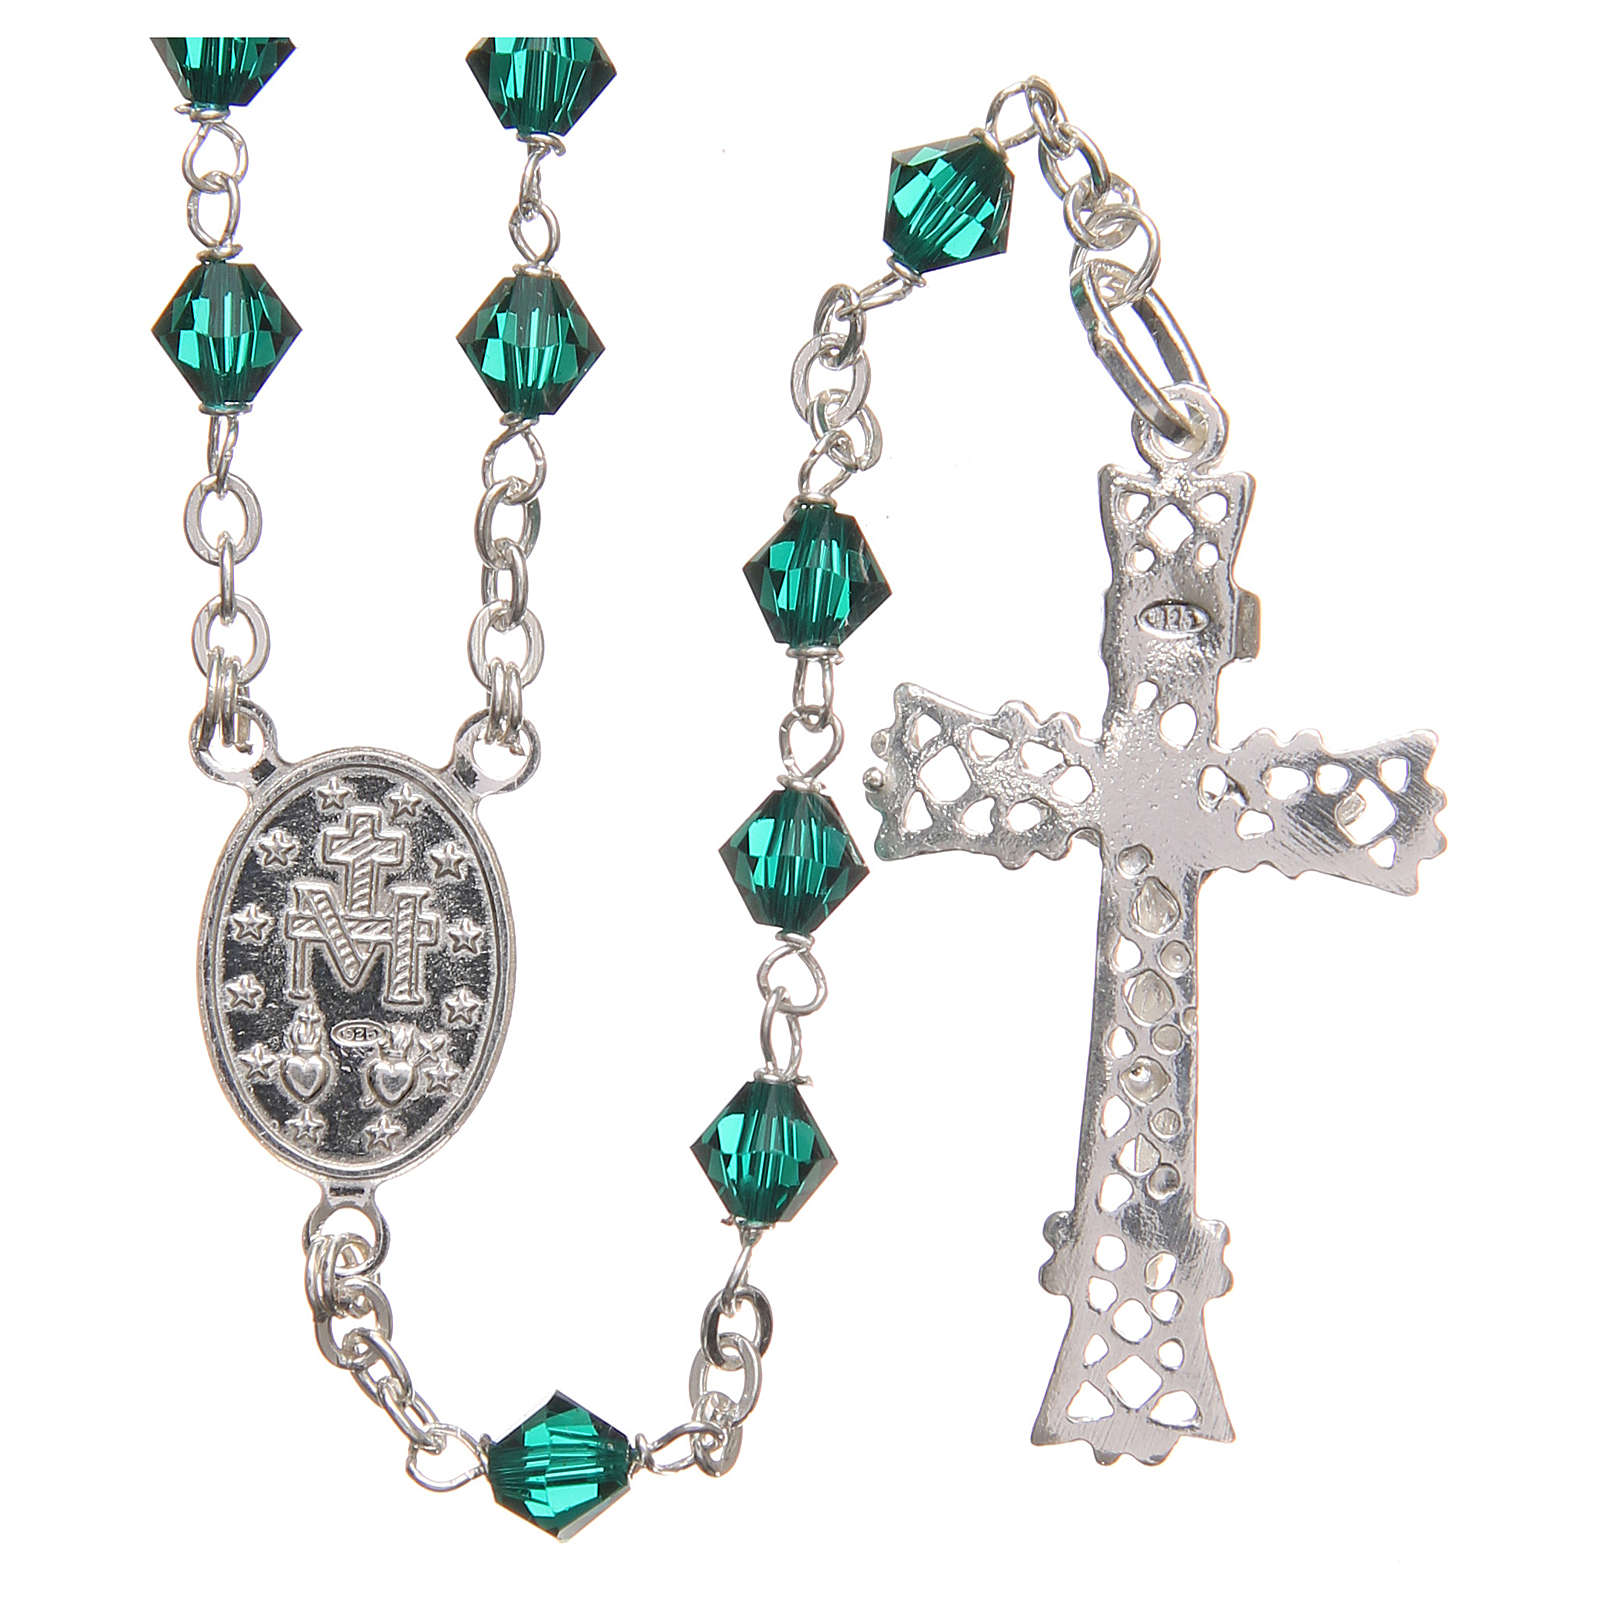 Rosary beads in Swarovski and sterling silver 6mm green 4